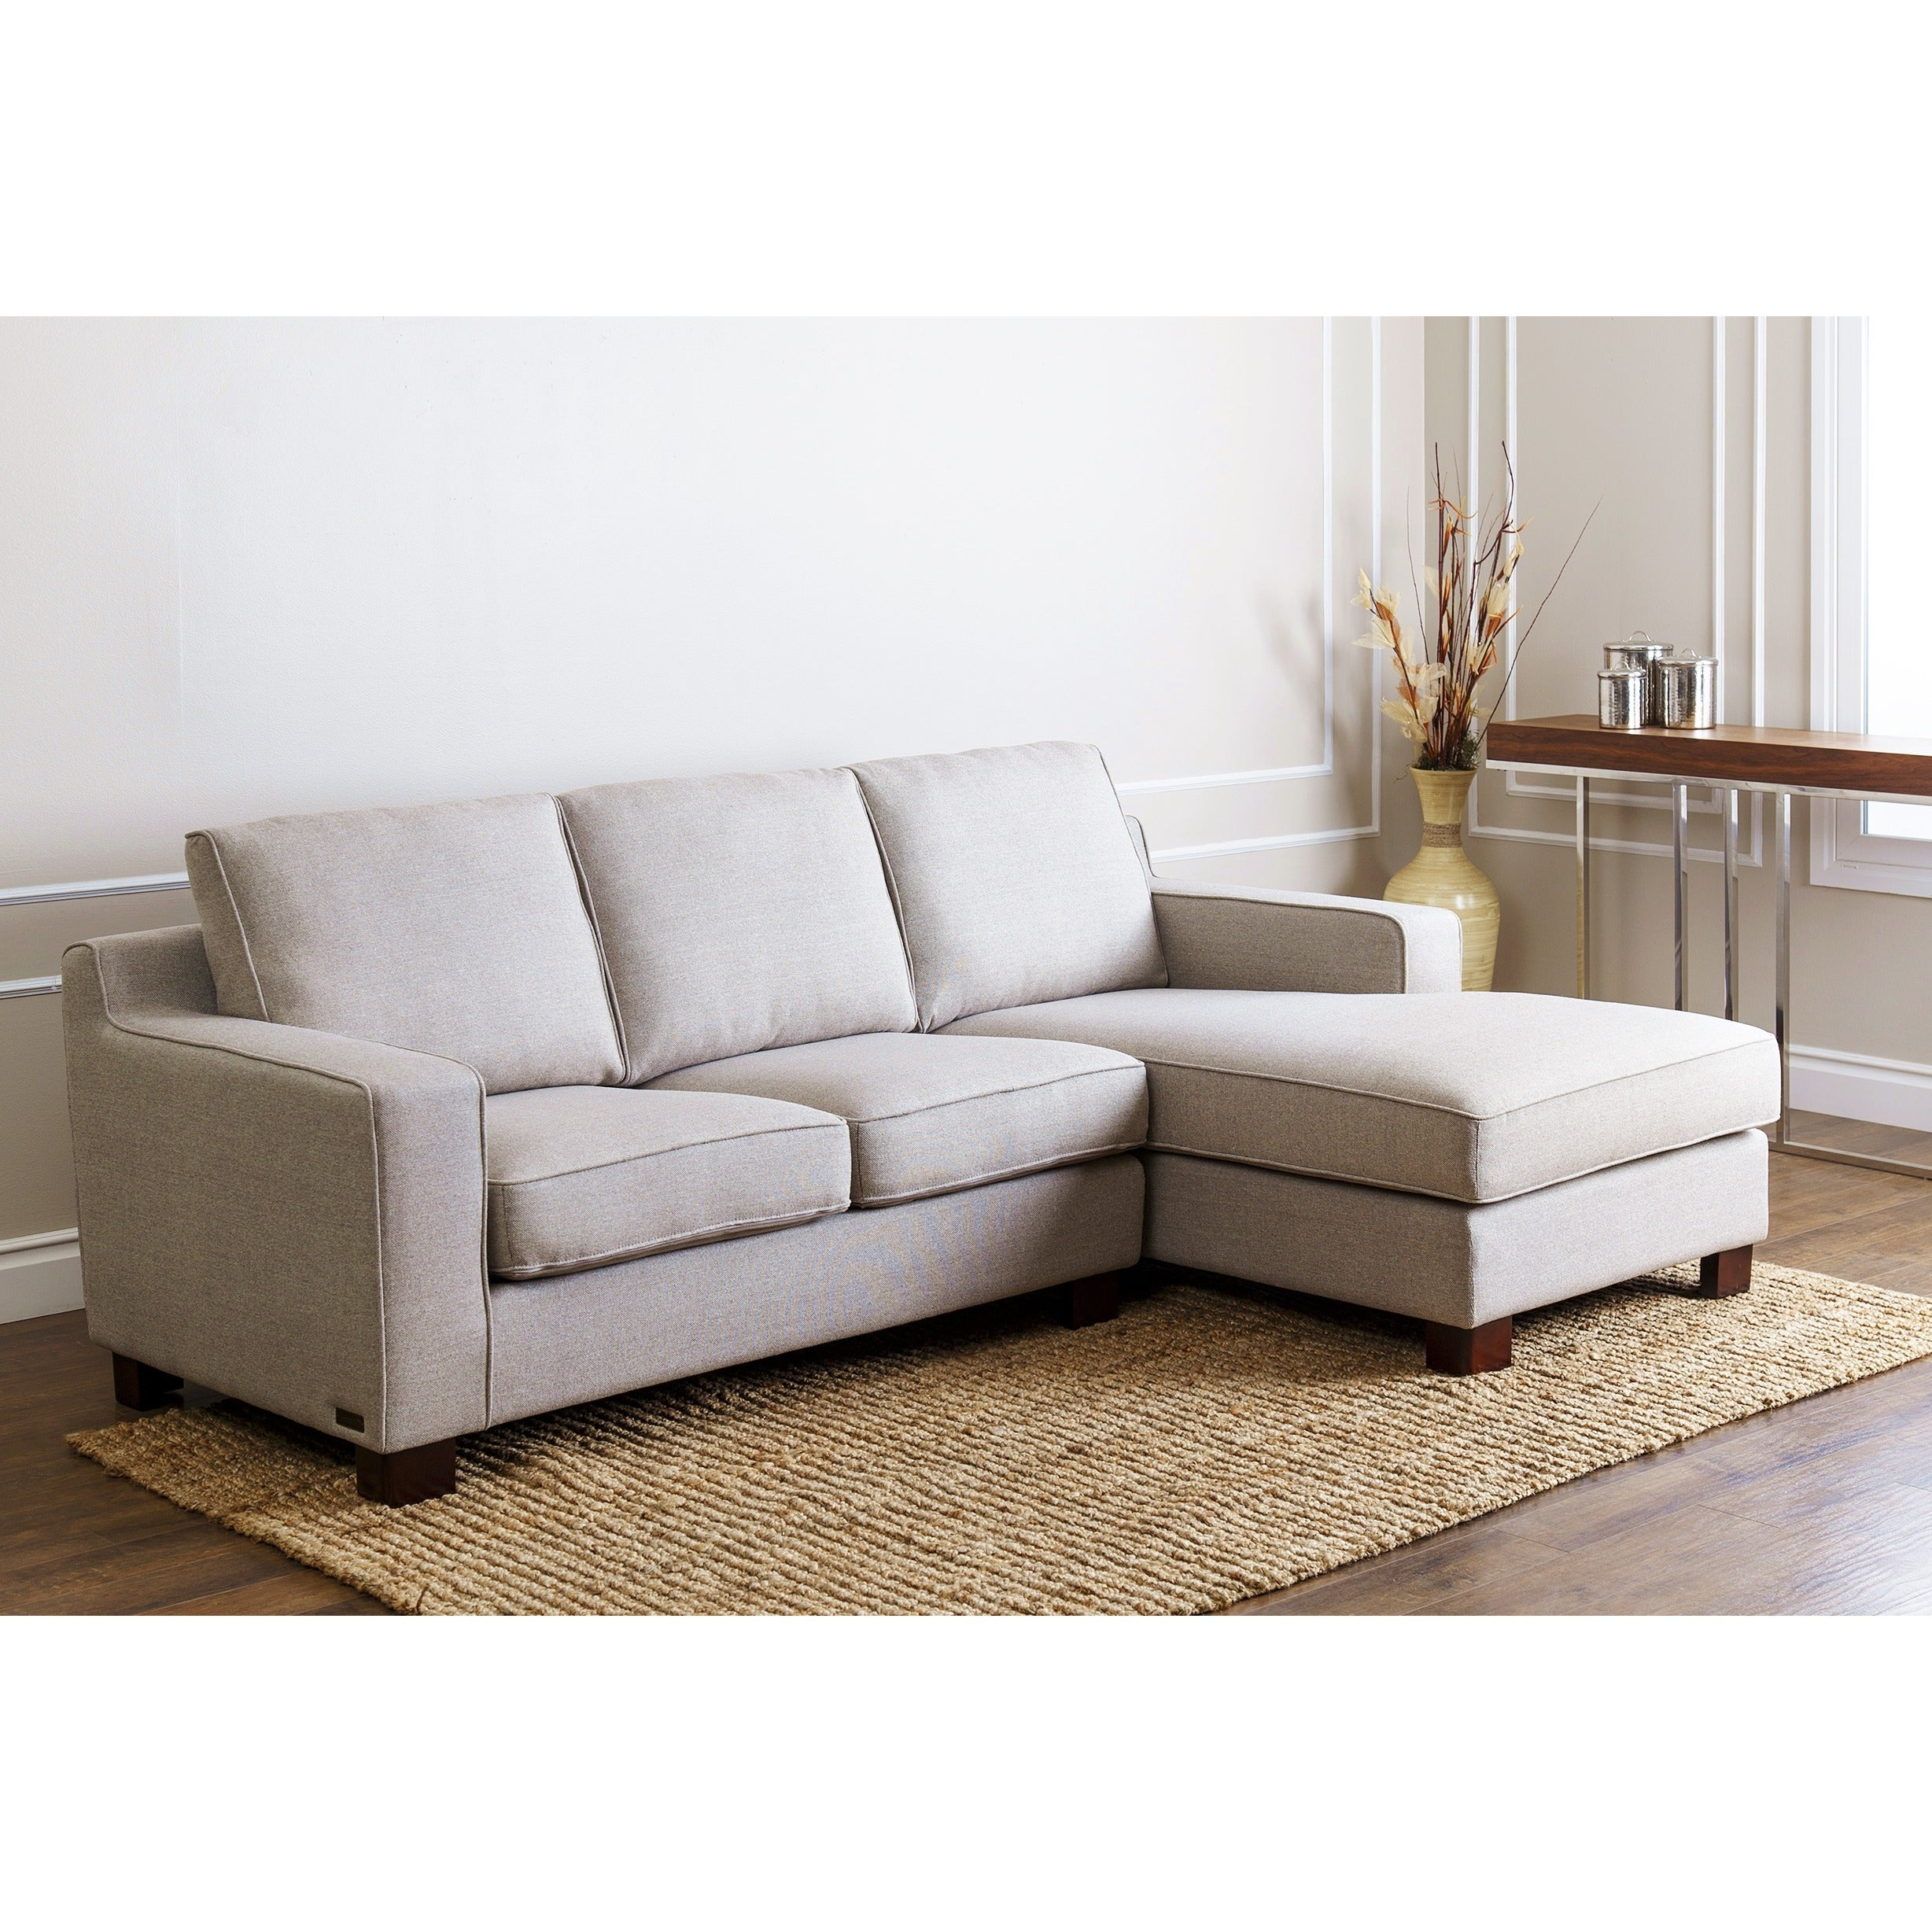 Abbyson Living Bella Cream Leather Sofa Sectional